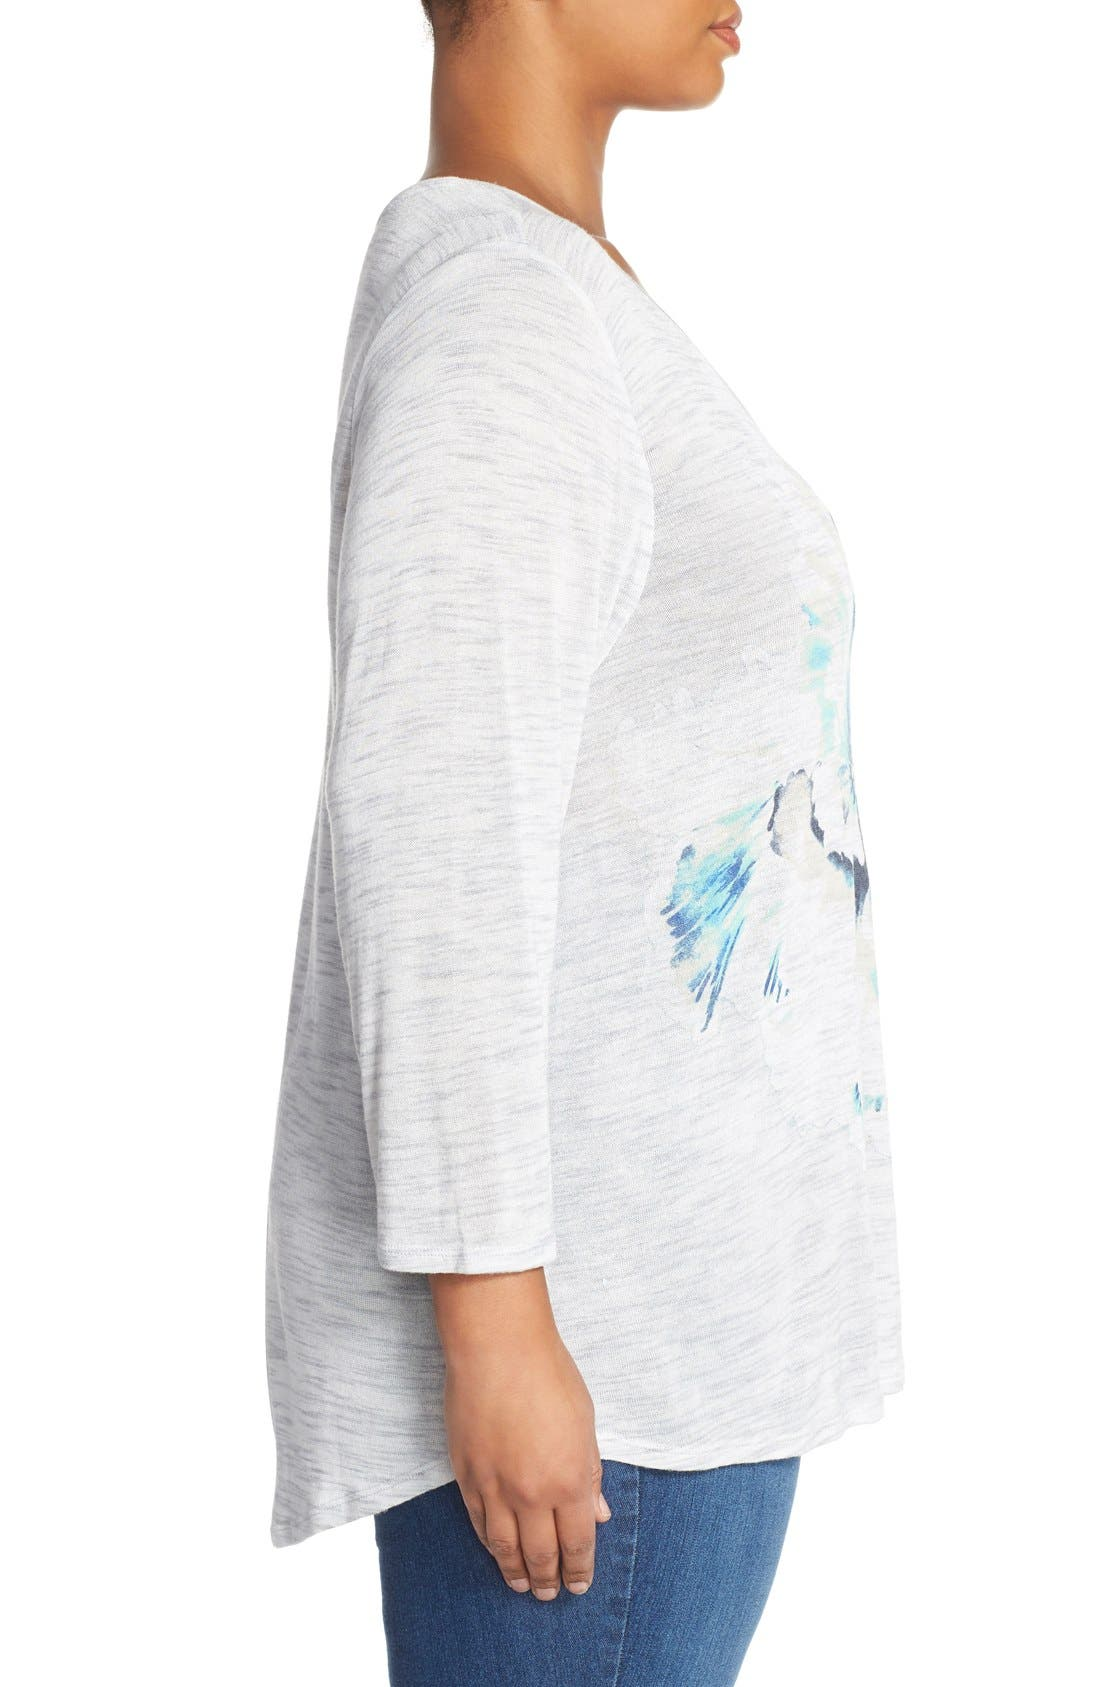 Alternate Image 3  - Lucky Brand 'Painted Floral' Tee (Plus Size)